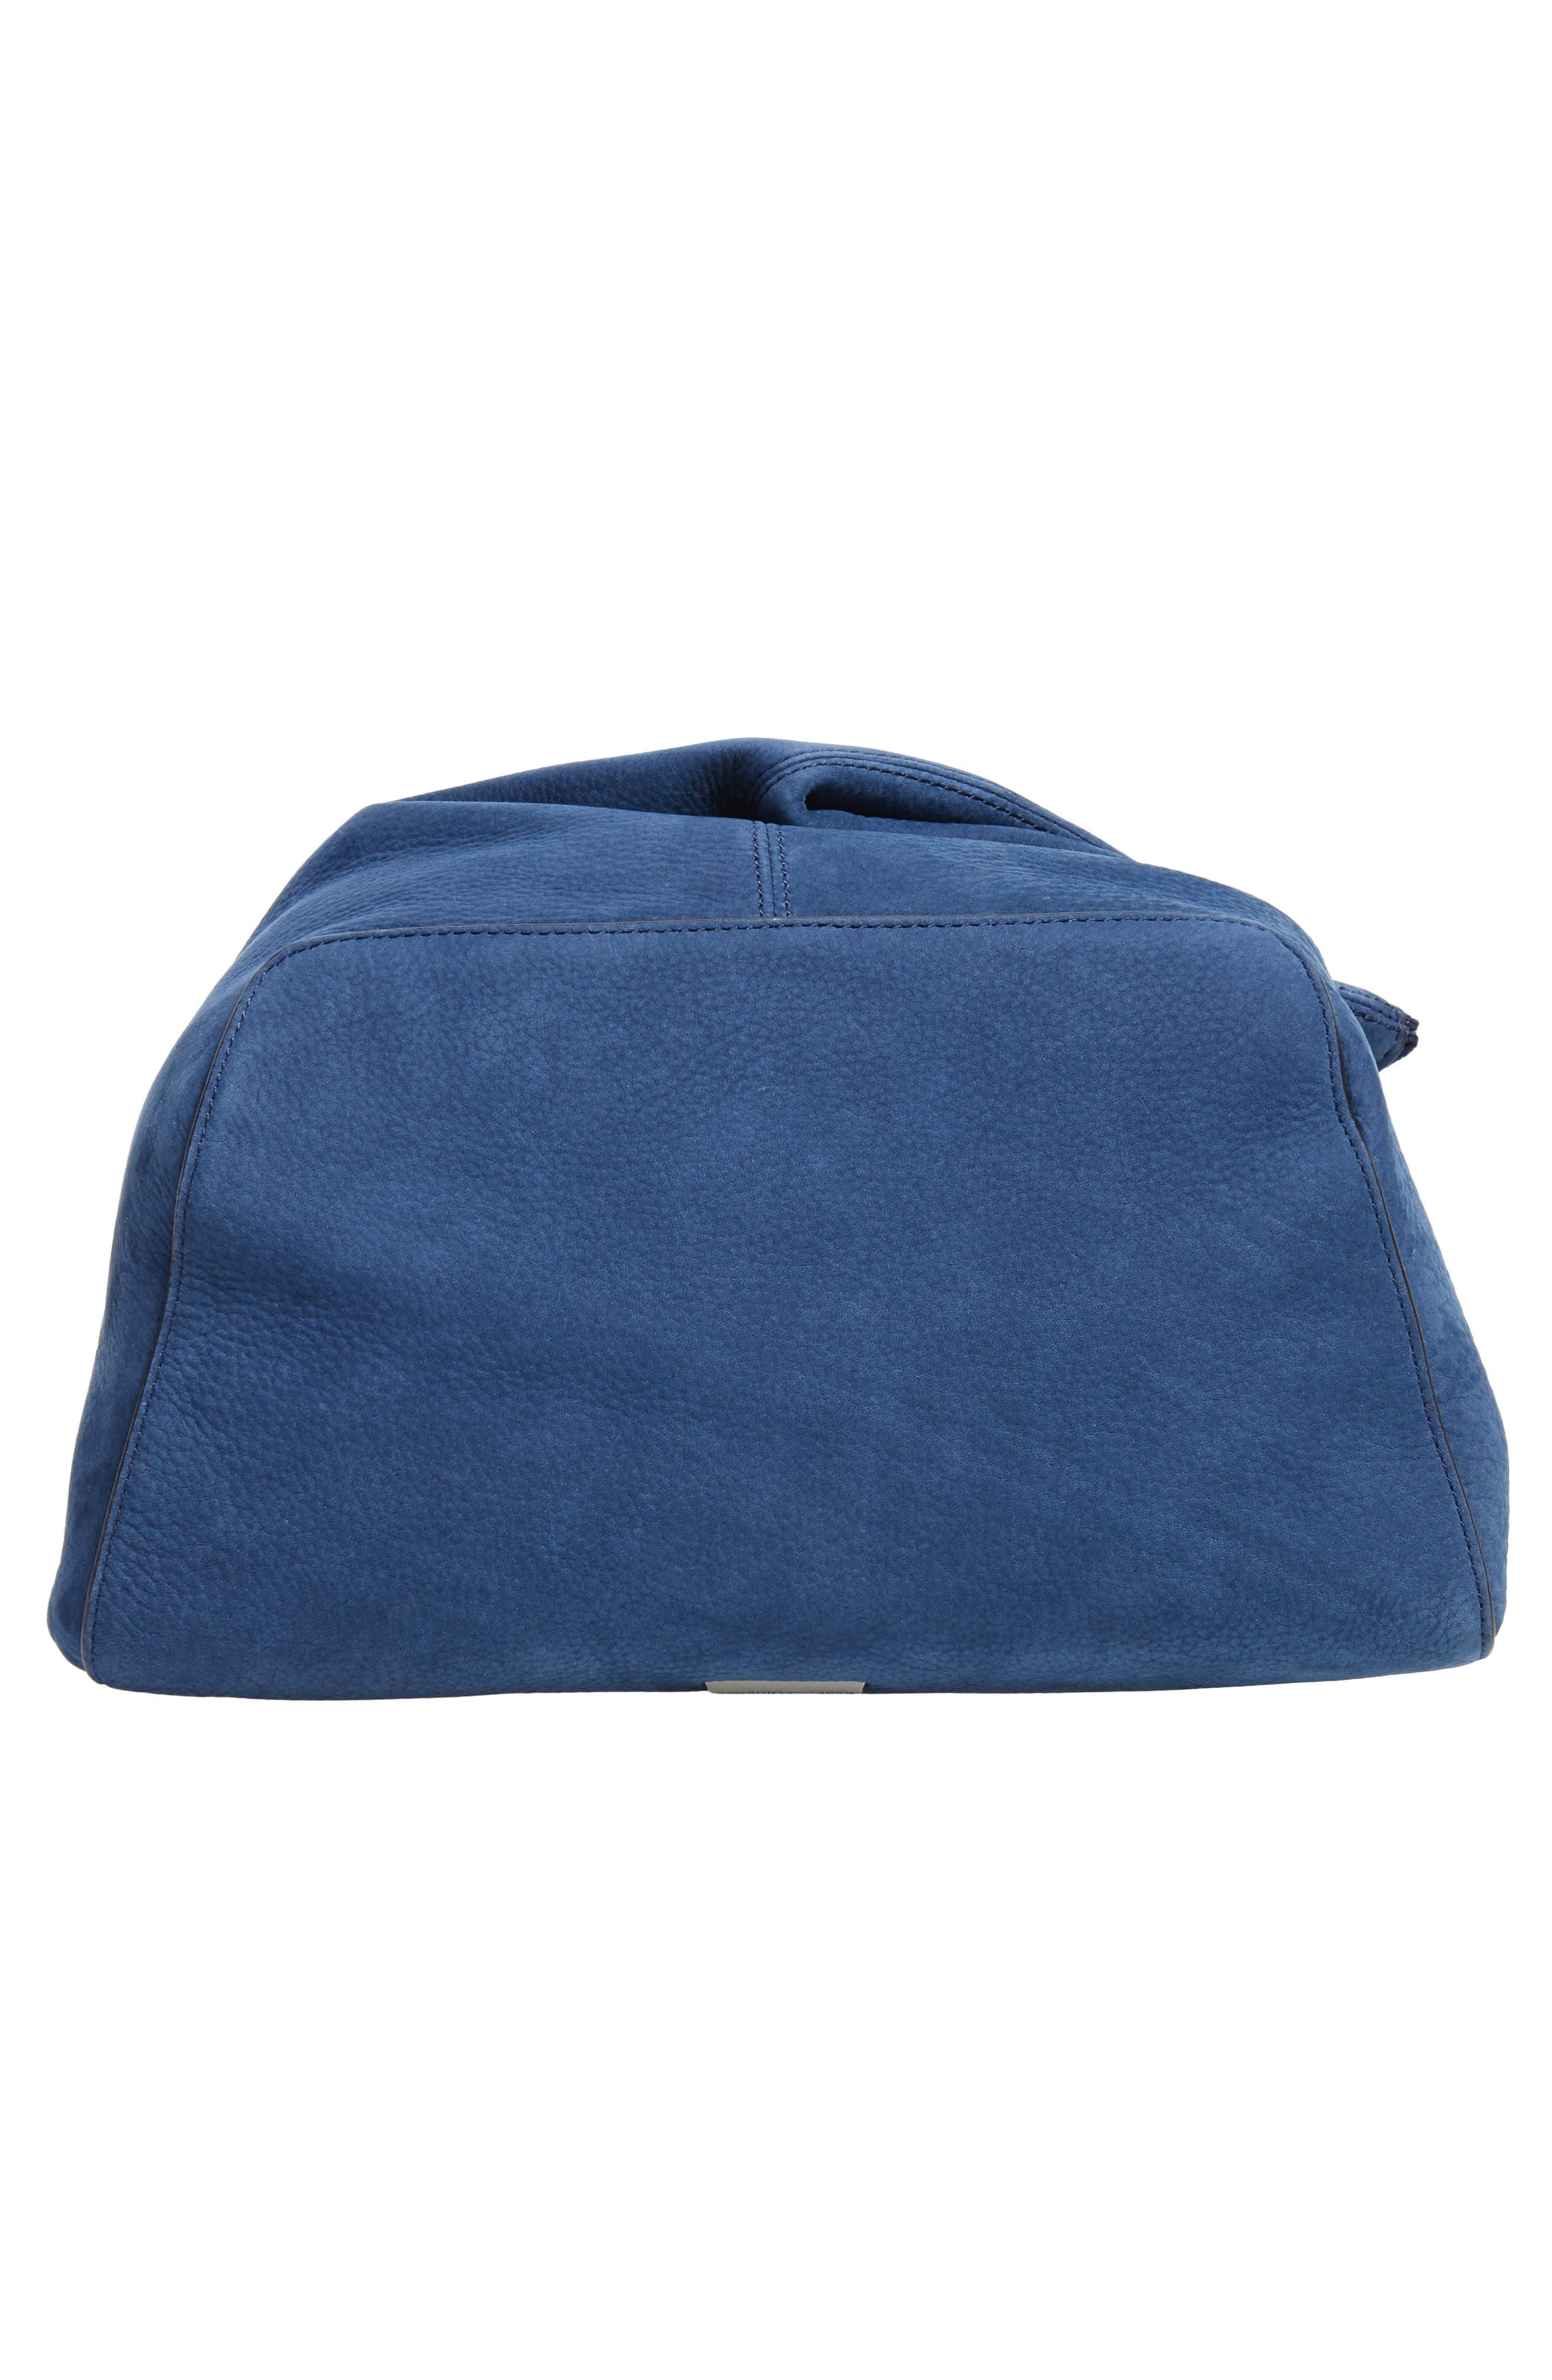 Jamie Leather Backpack,                             Alternate thumbnail 12, color,